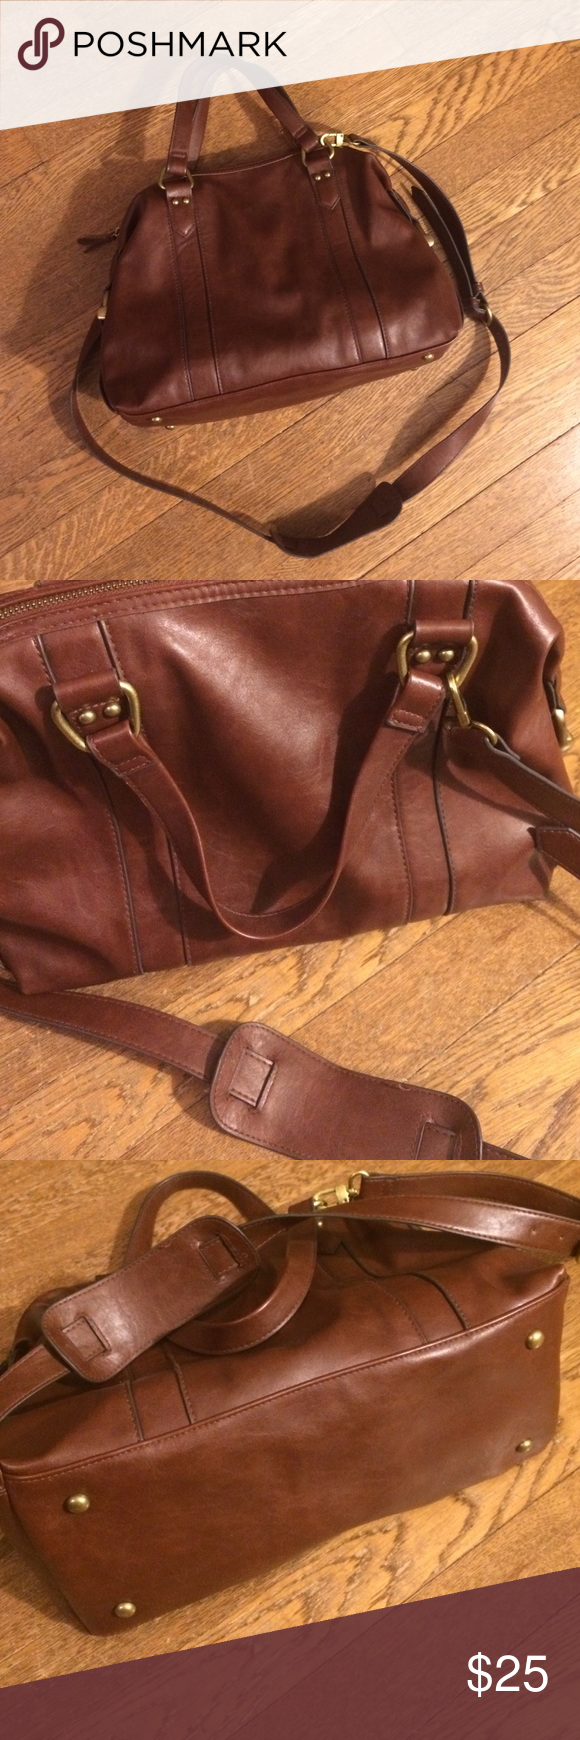 """Vegan leather brown handbag with cross-body strap Excellent condition. Vegan """"leather"""" rich brown color. Brass hardware. Perfect for fall Merona Bags Crossbody Bags"""